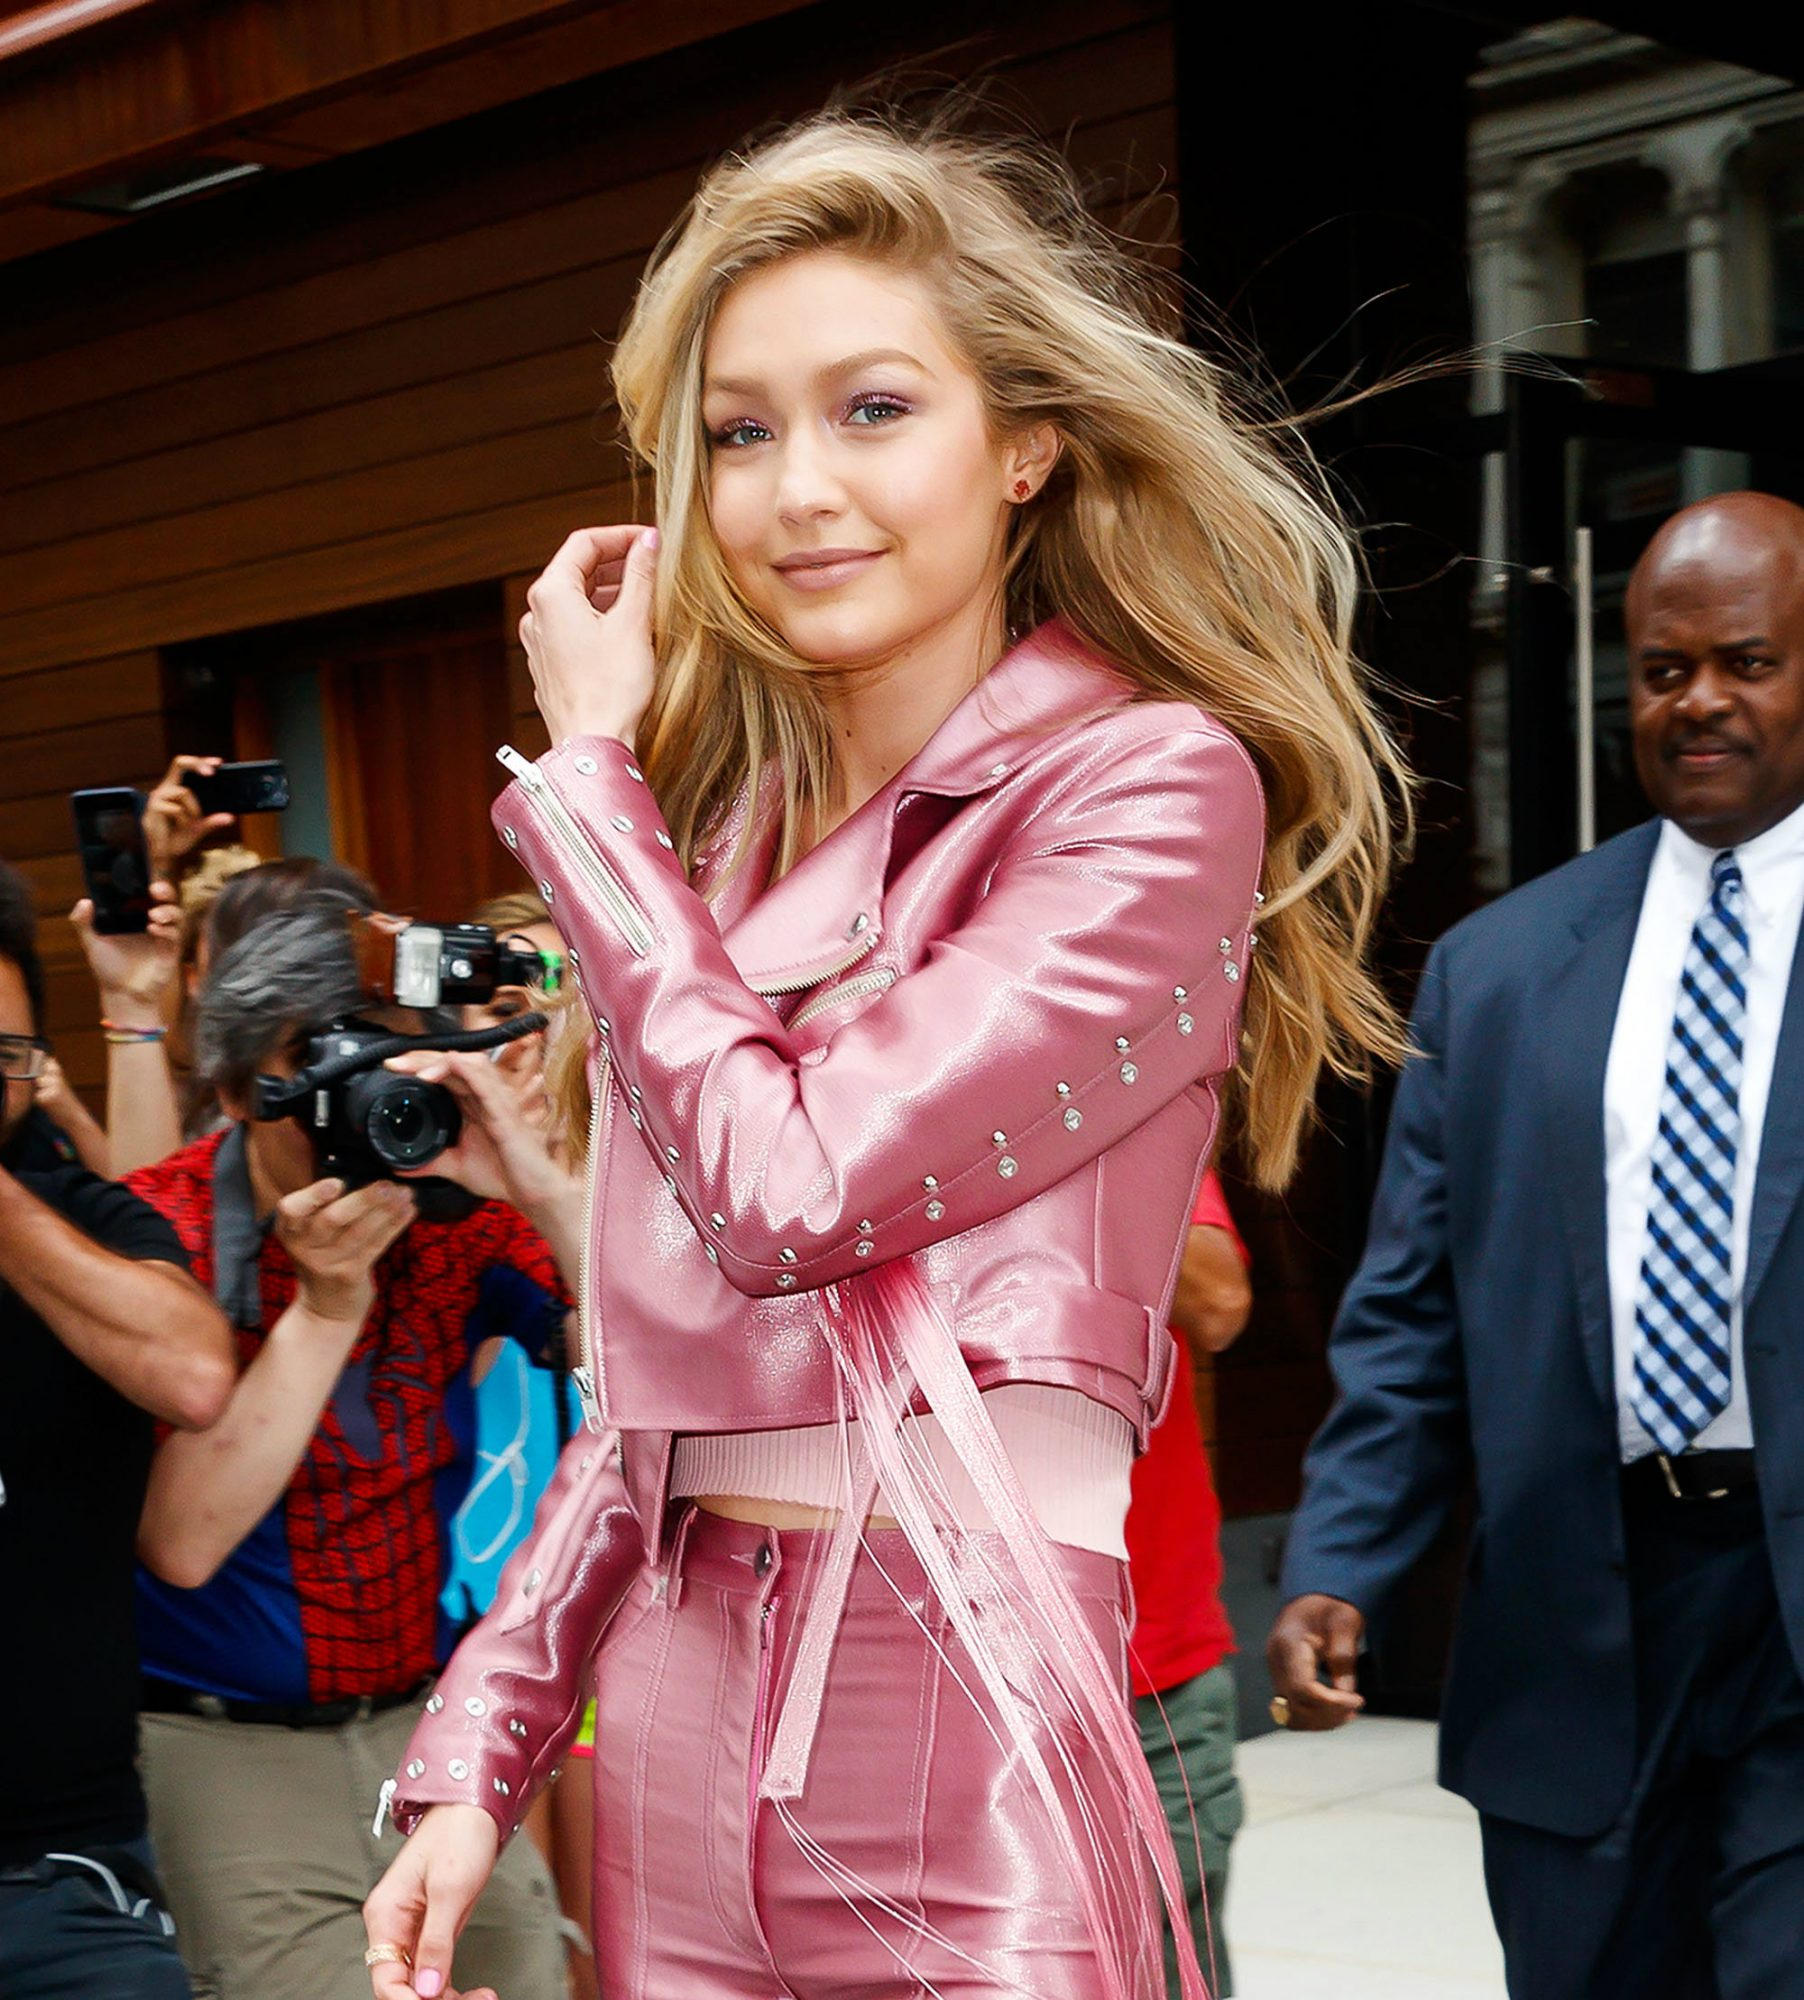 Gigi Hadid is Fully Wearing Pink Bell Bottoms on the Streets of New York